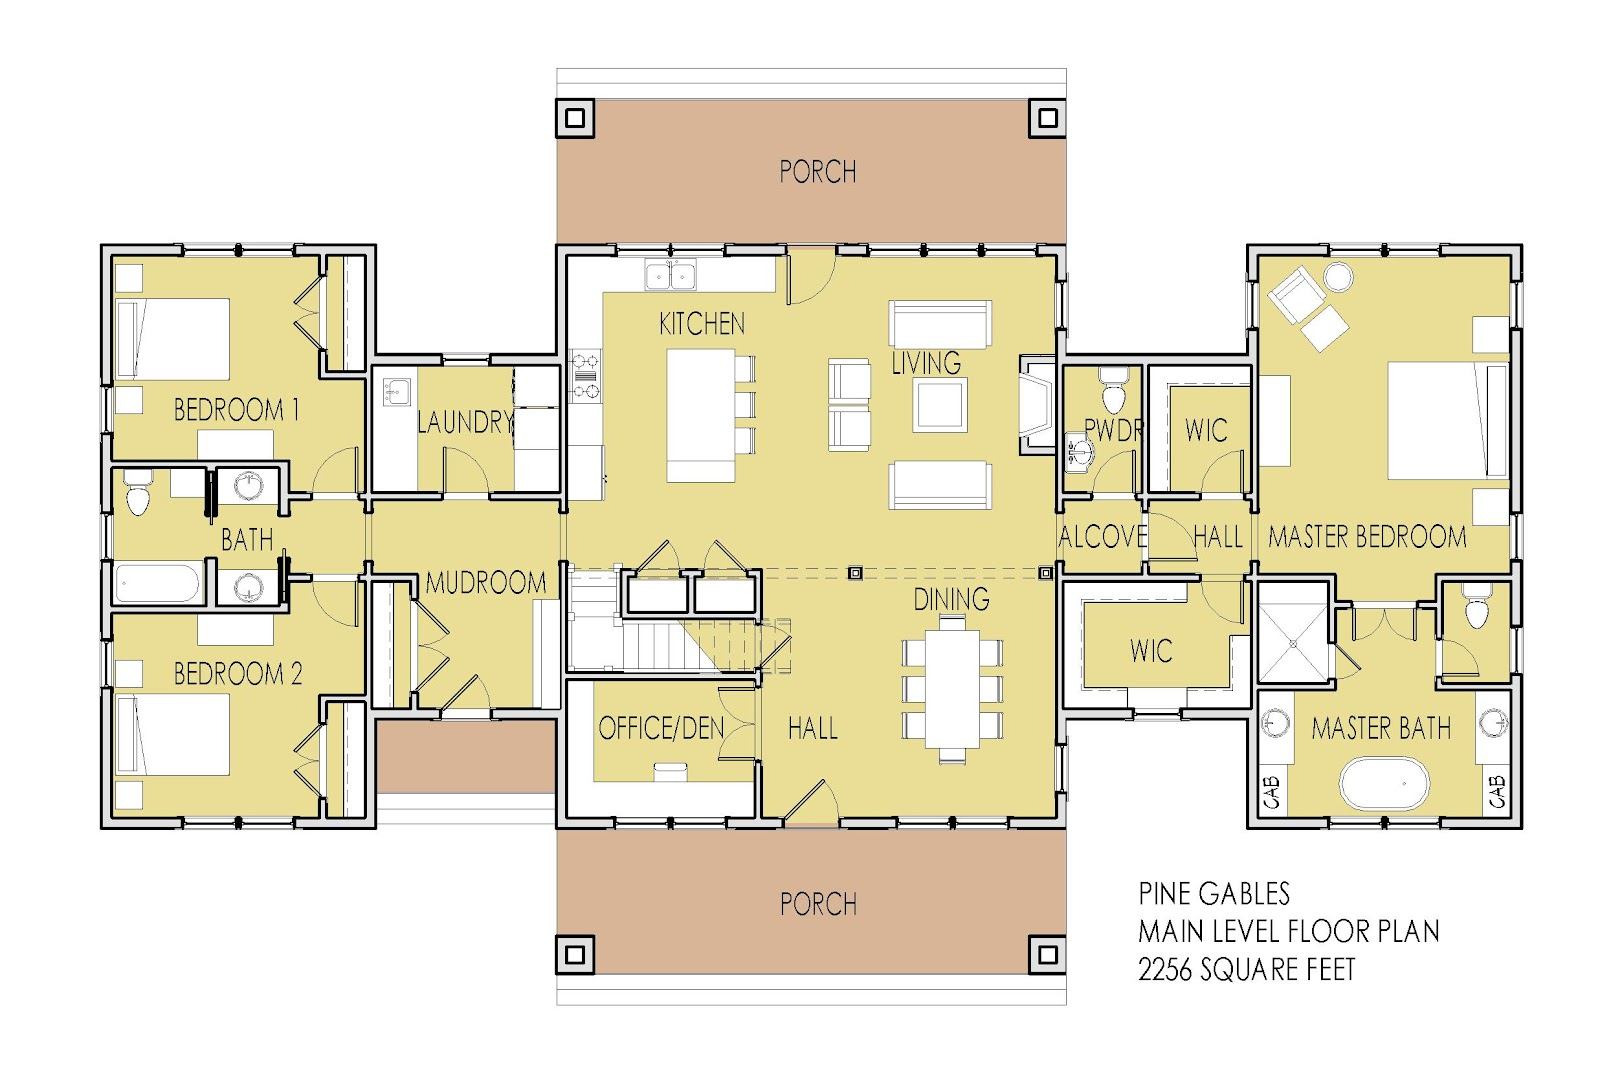 New house plan unveiled home interior design ideas and for New floor plans